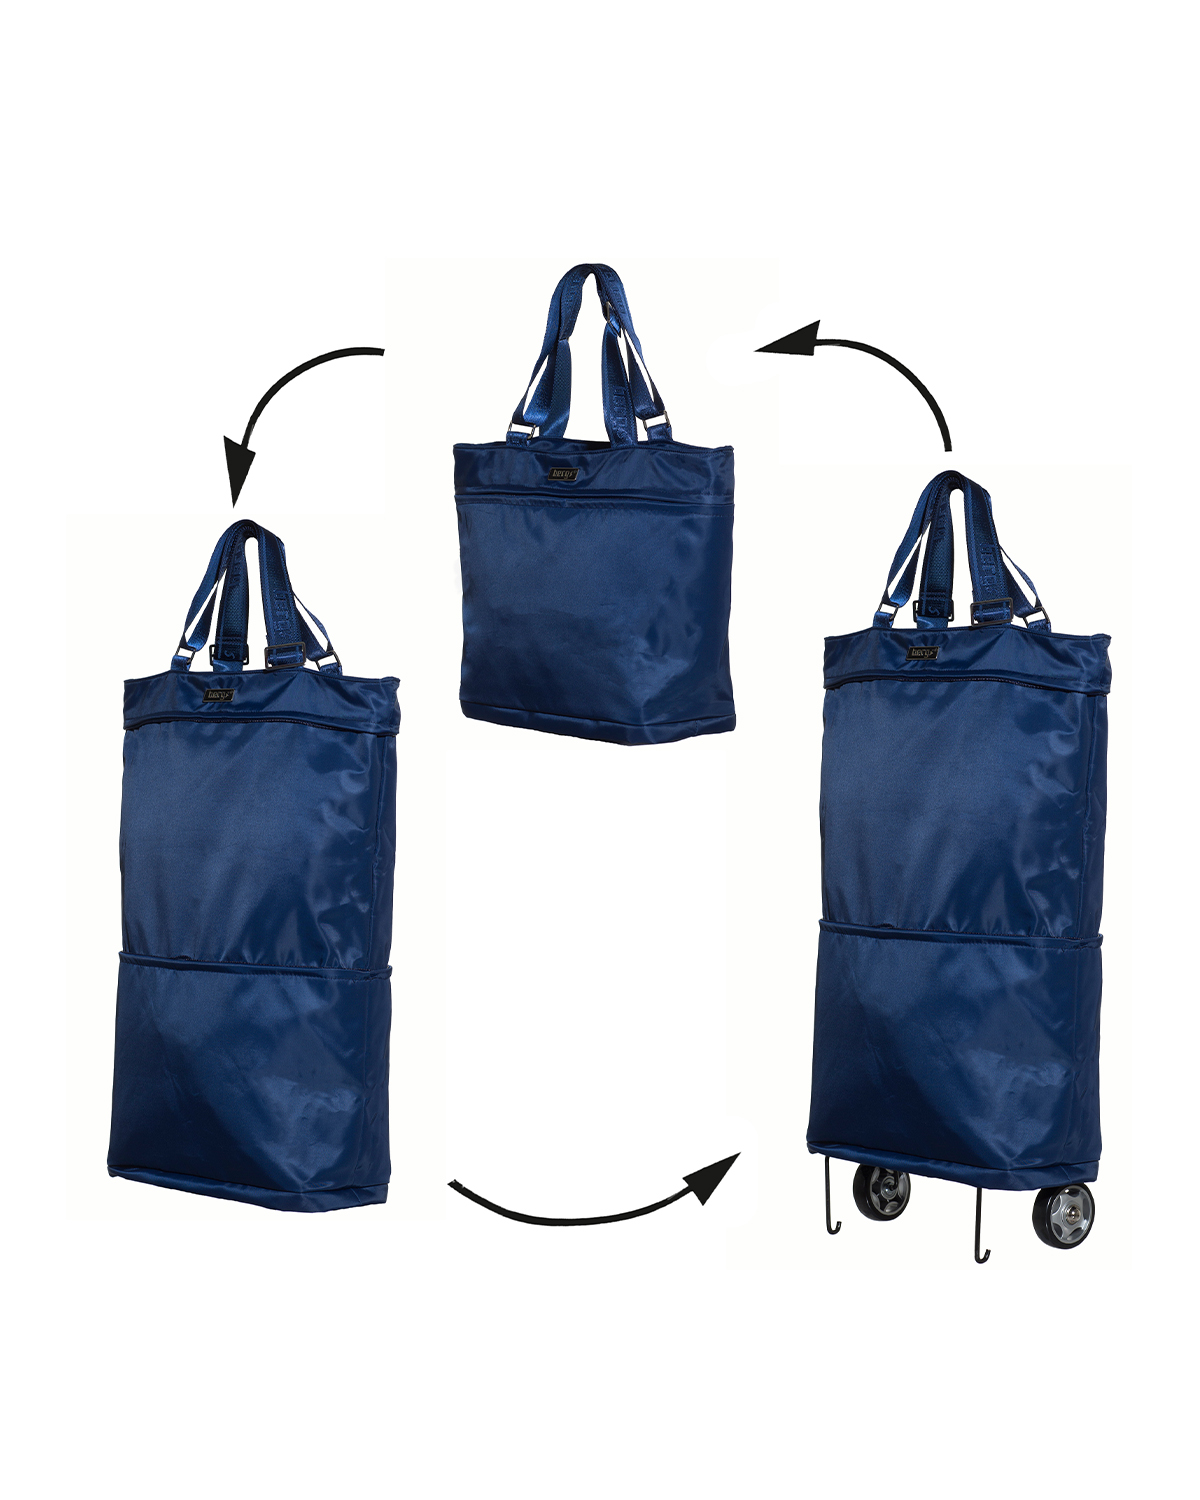 Bergs3in1 Multifunctional Unisex Bag Polyester Blue